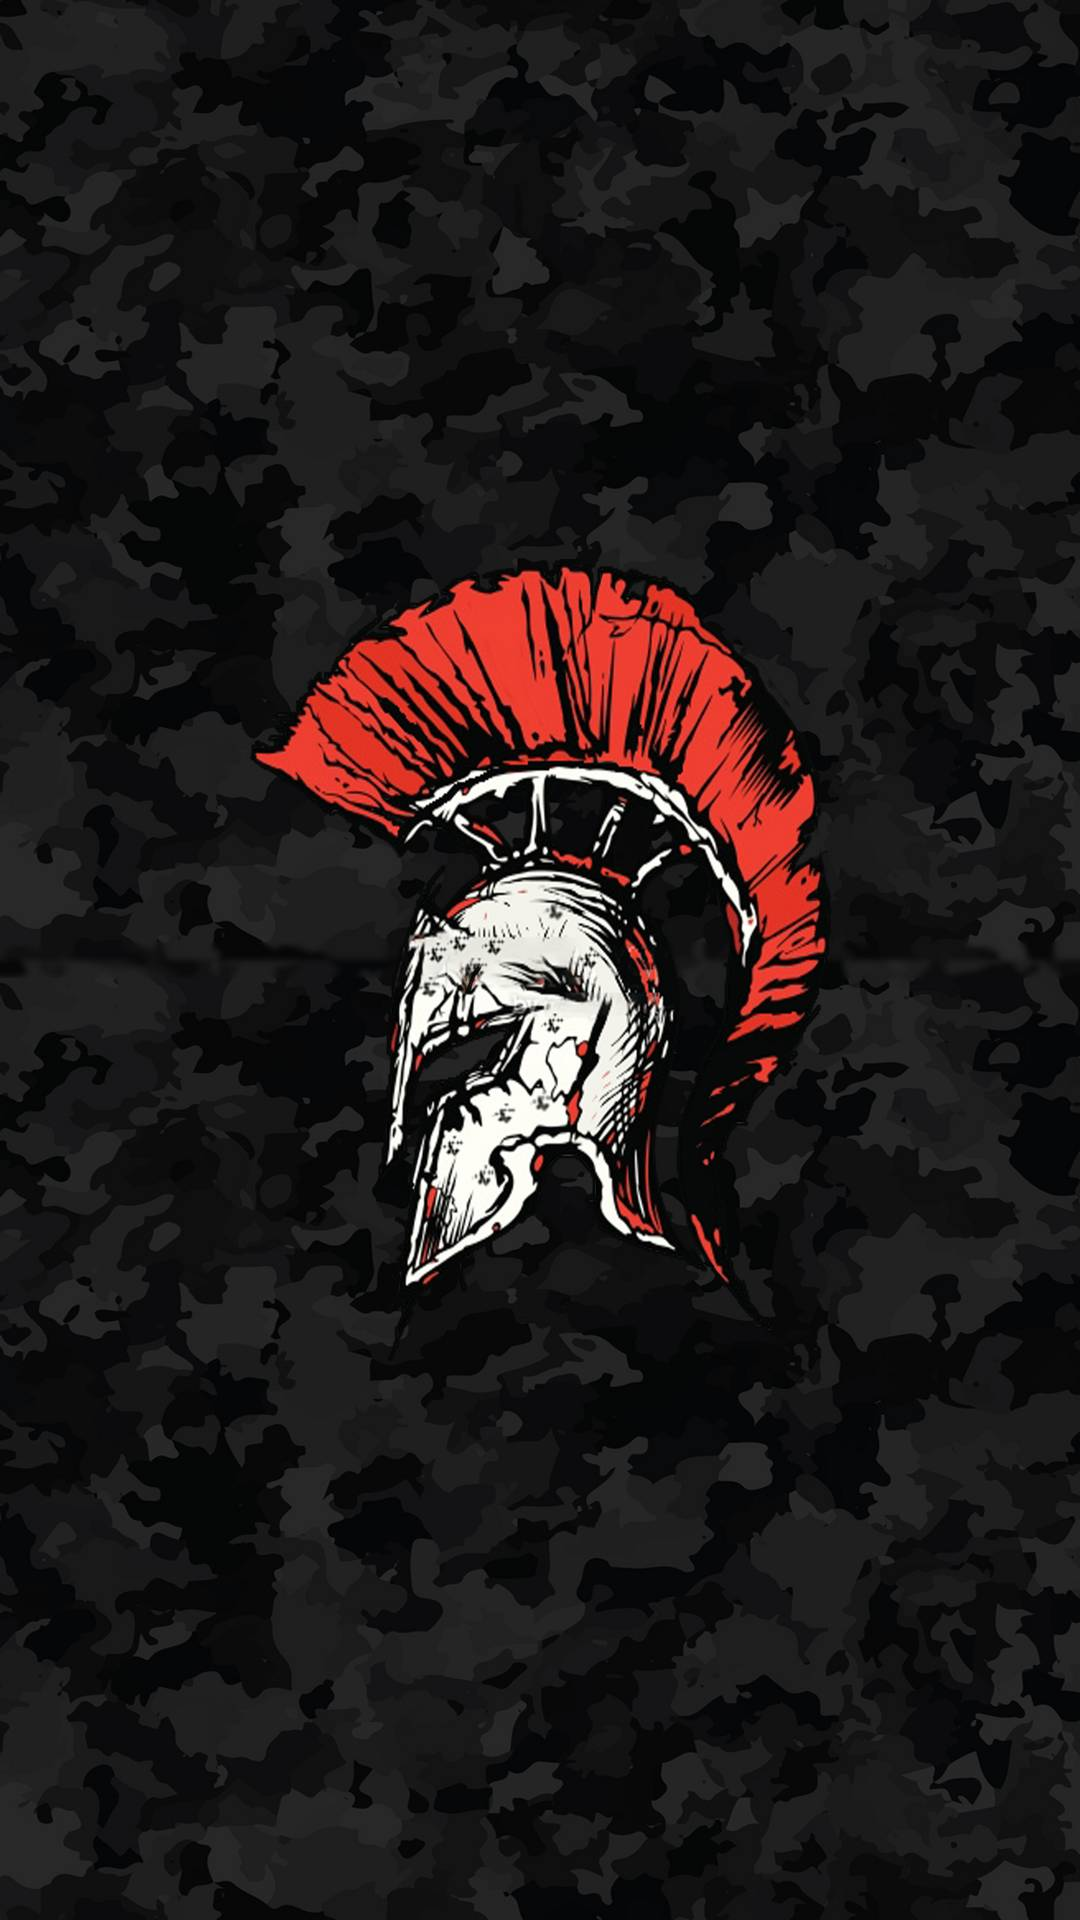 Spartan Army Helmet Wallpaper Wallpapers For Tech